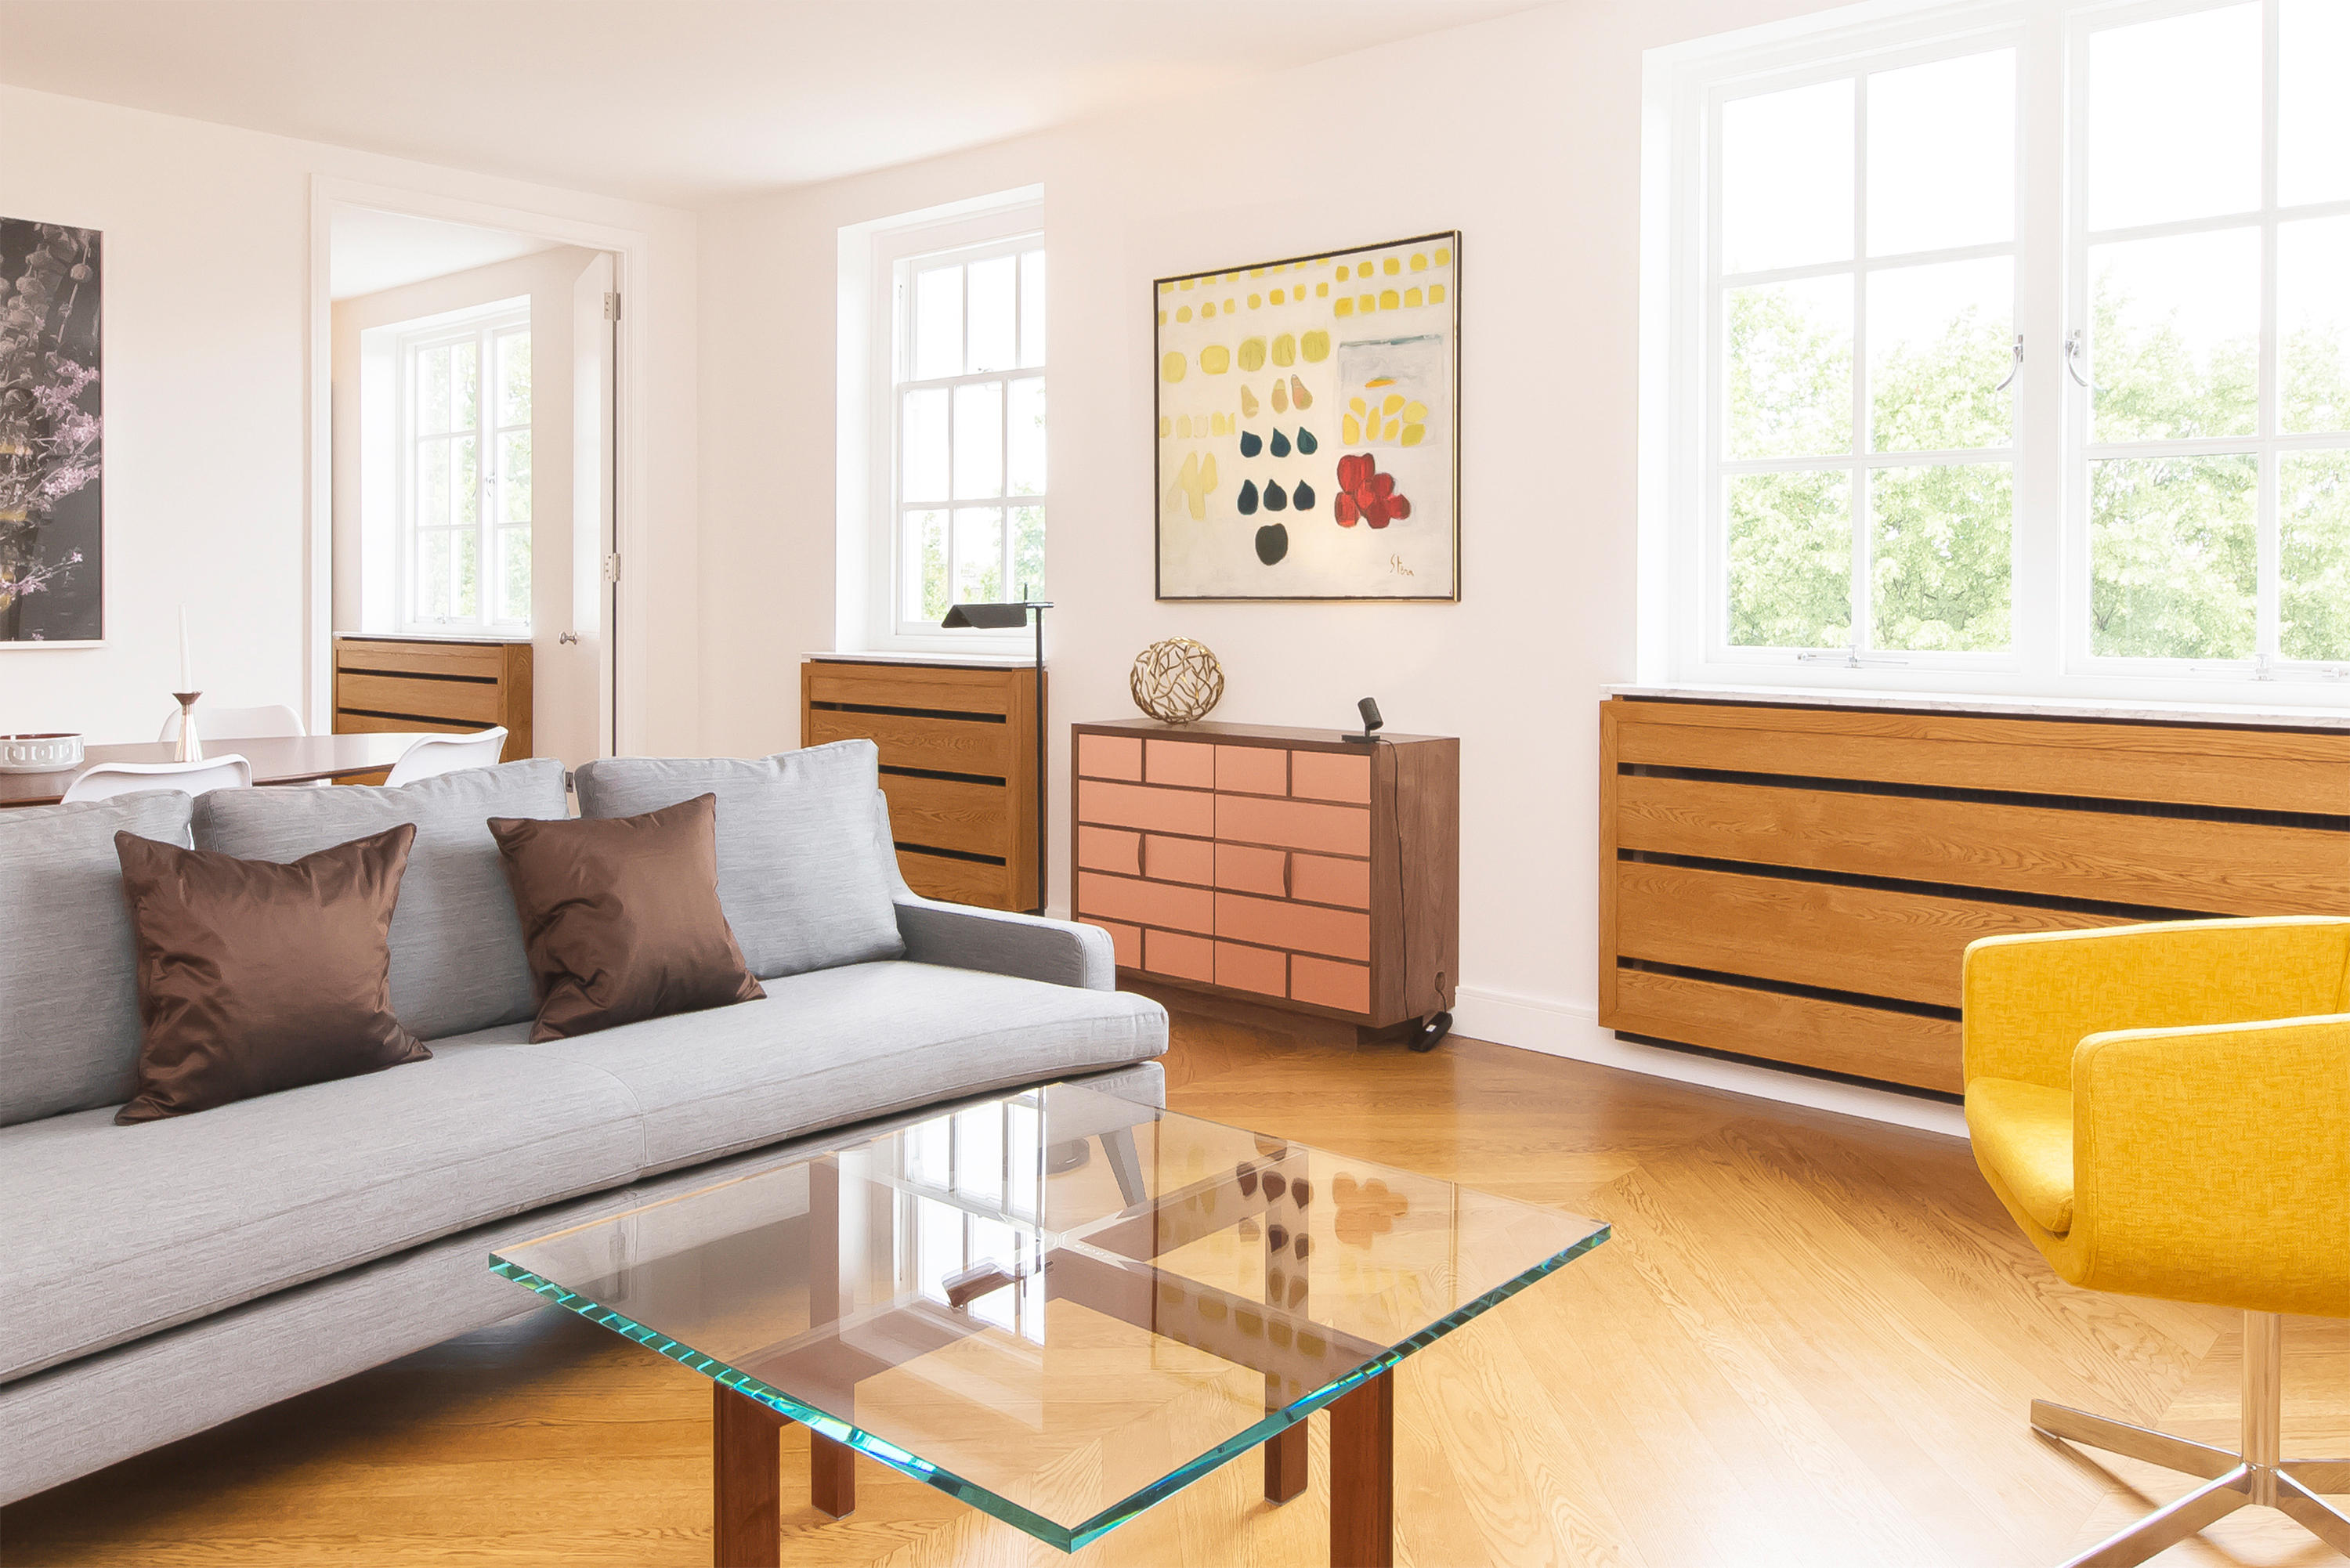 brompton book case wall shelves from ivar architonic